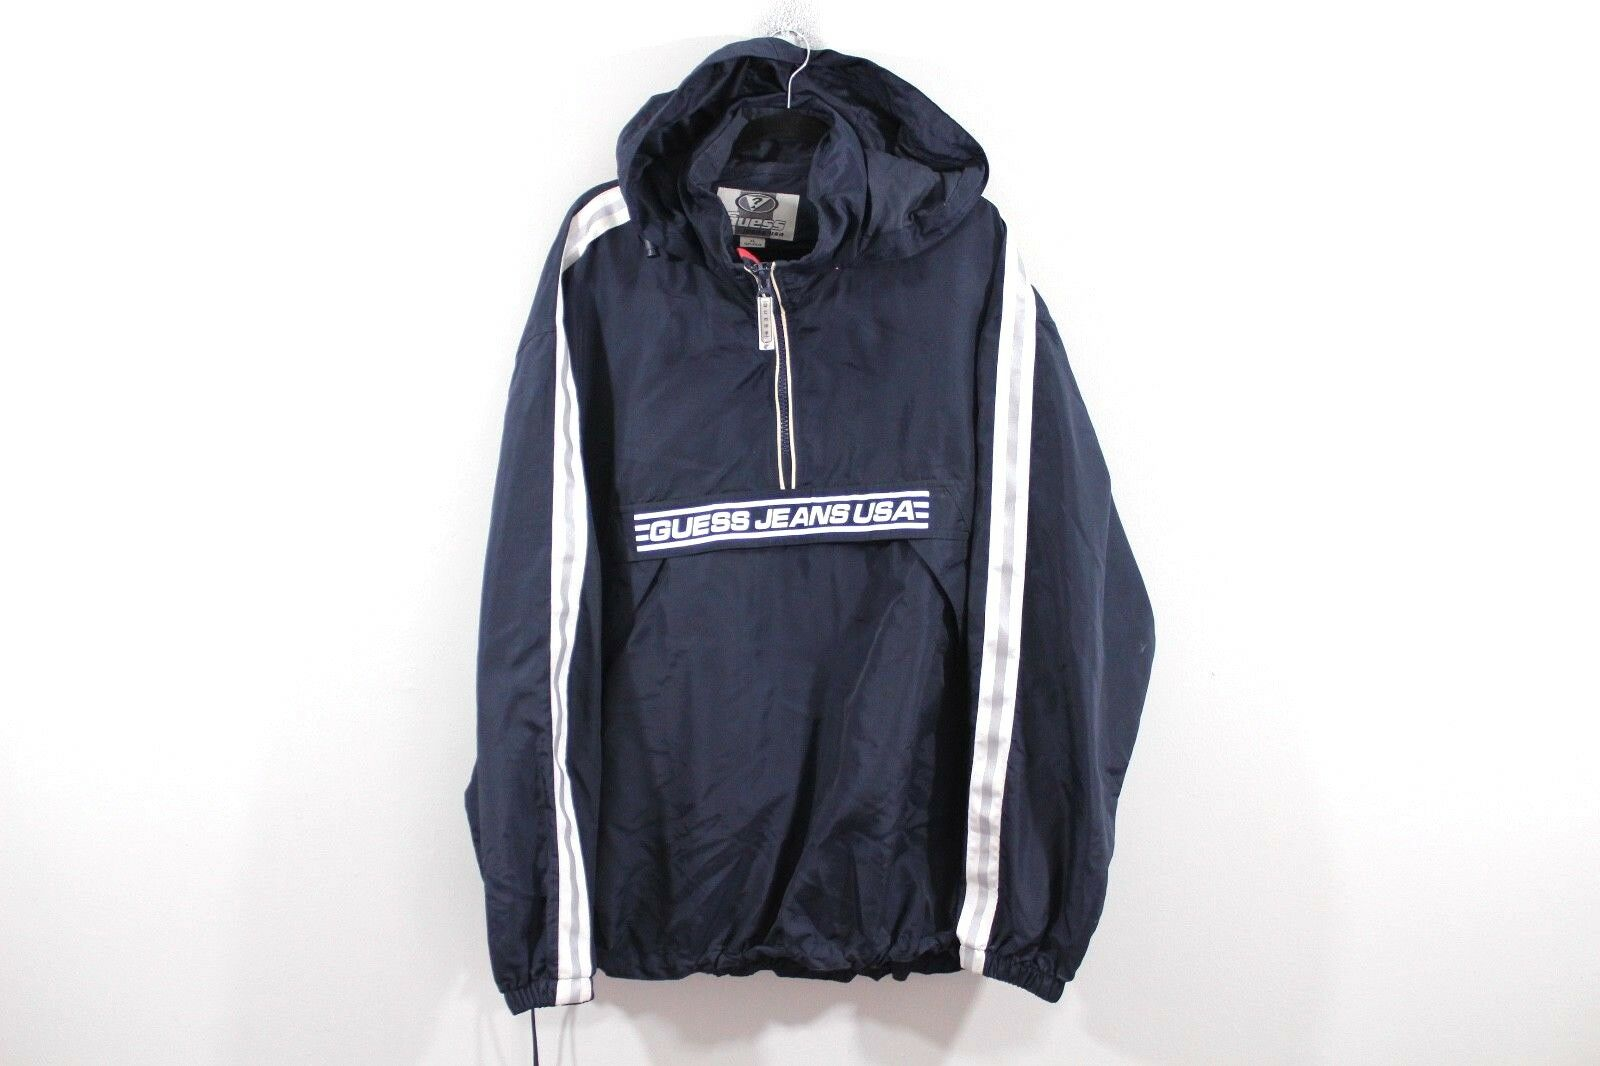 Vintage Années 90 Out Guess Hommes XL Sort Out 90 USA à Capuche Pull-Over Anorak Veste ace62f